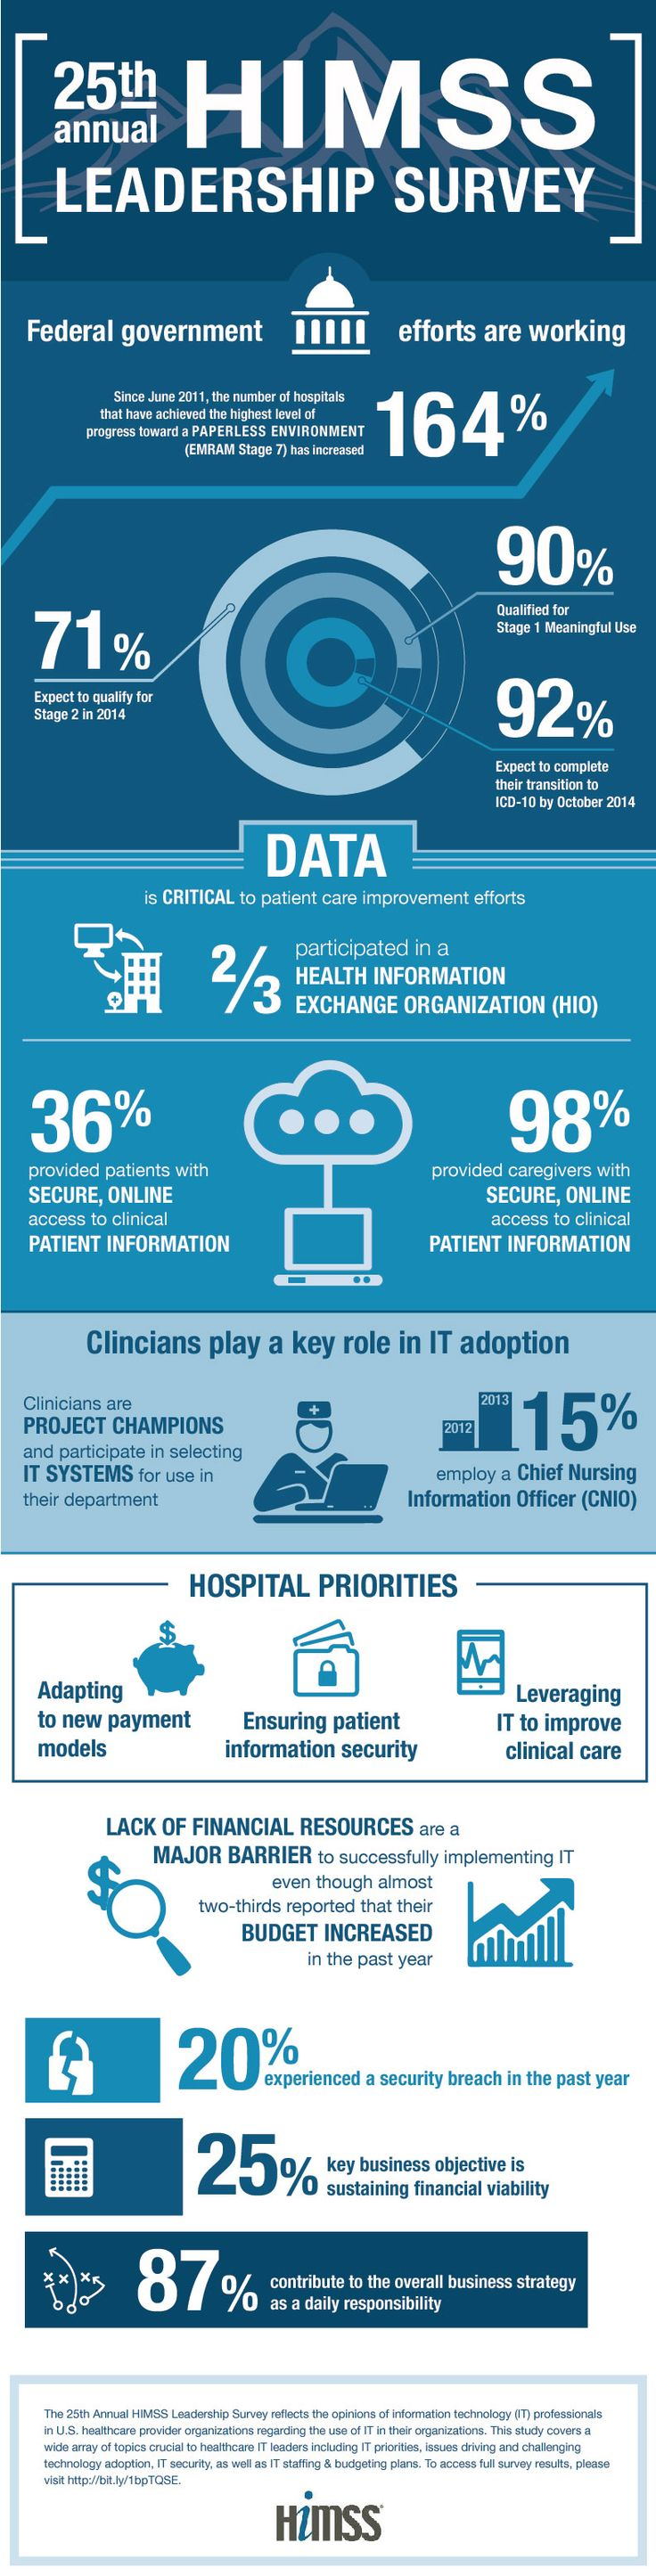 Since June 2011, the number of hospitals that have achieved the highest level of progress toward a paperless environment has increased 164% #healthcare #himss